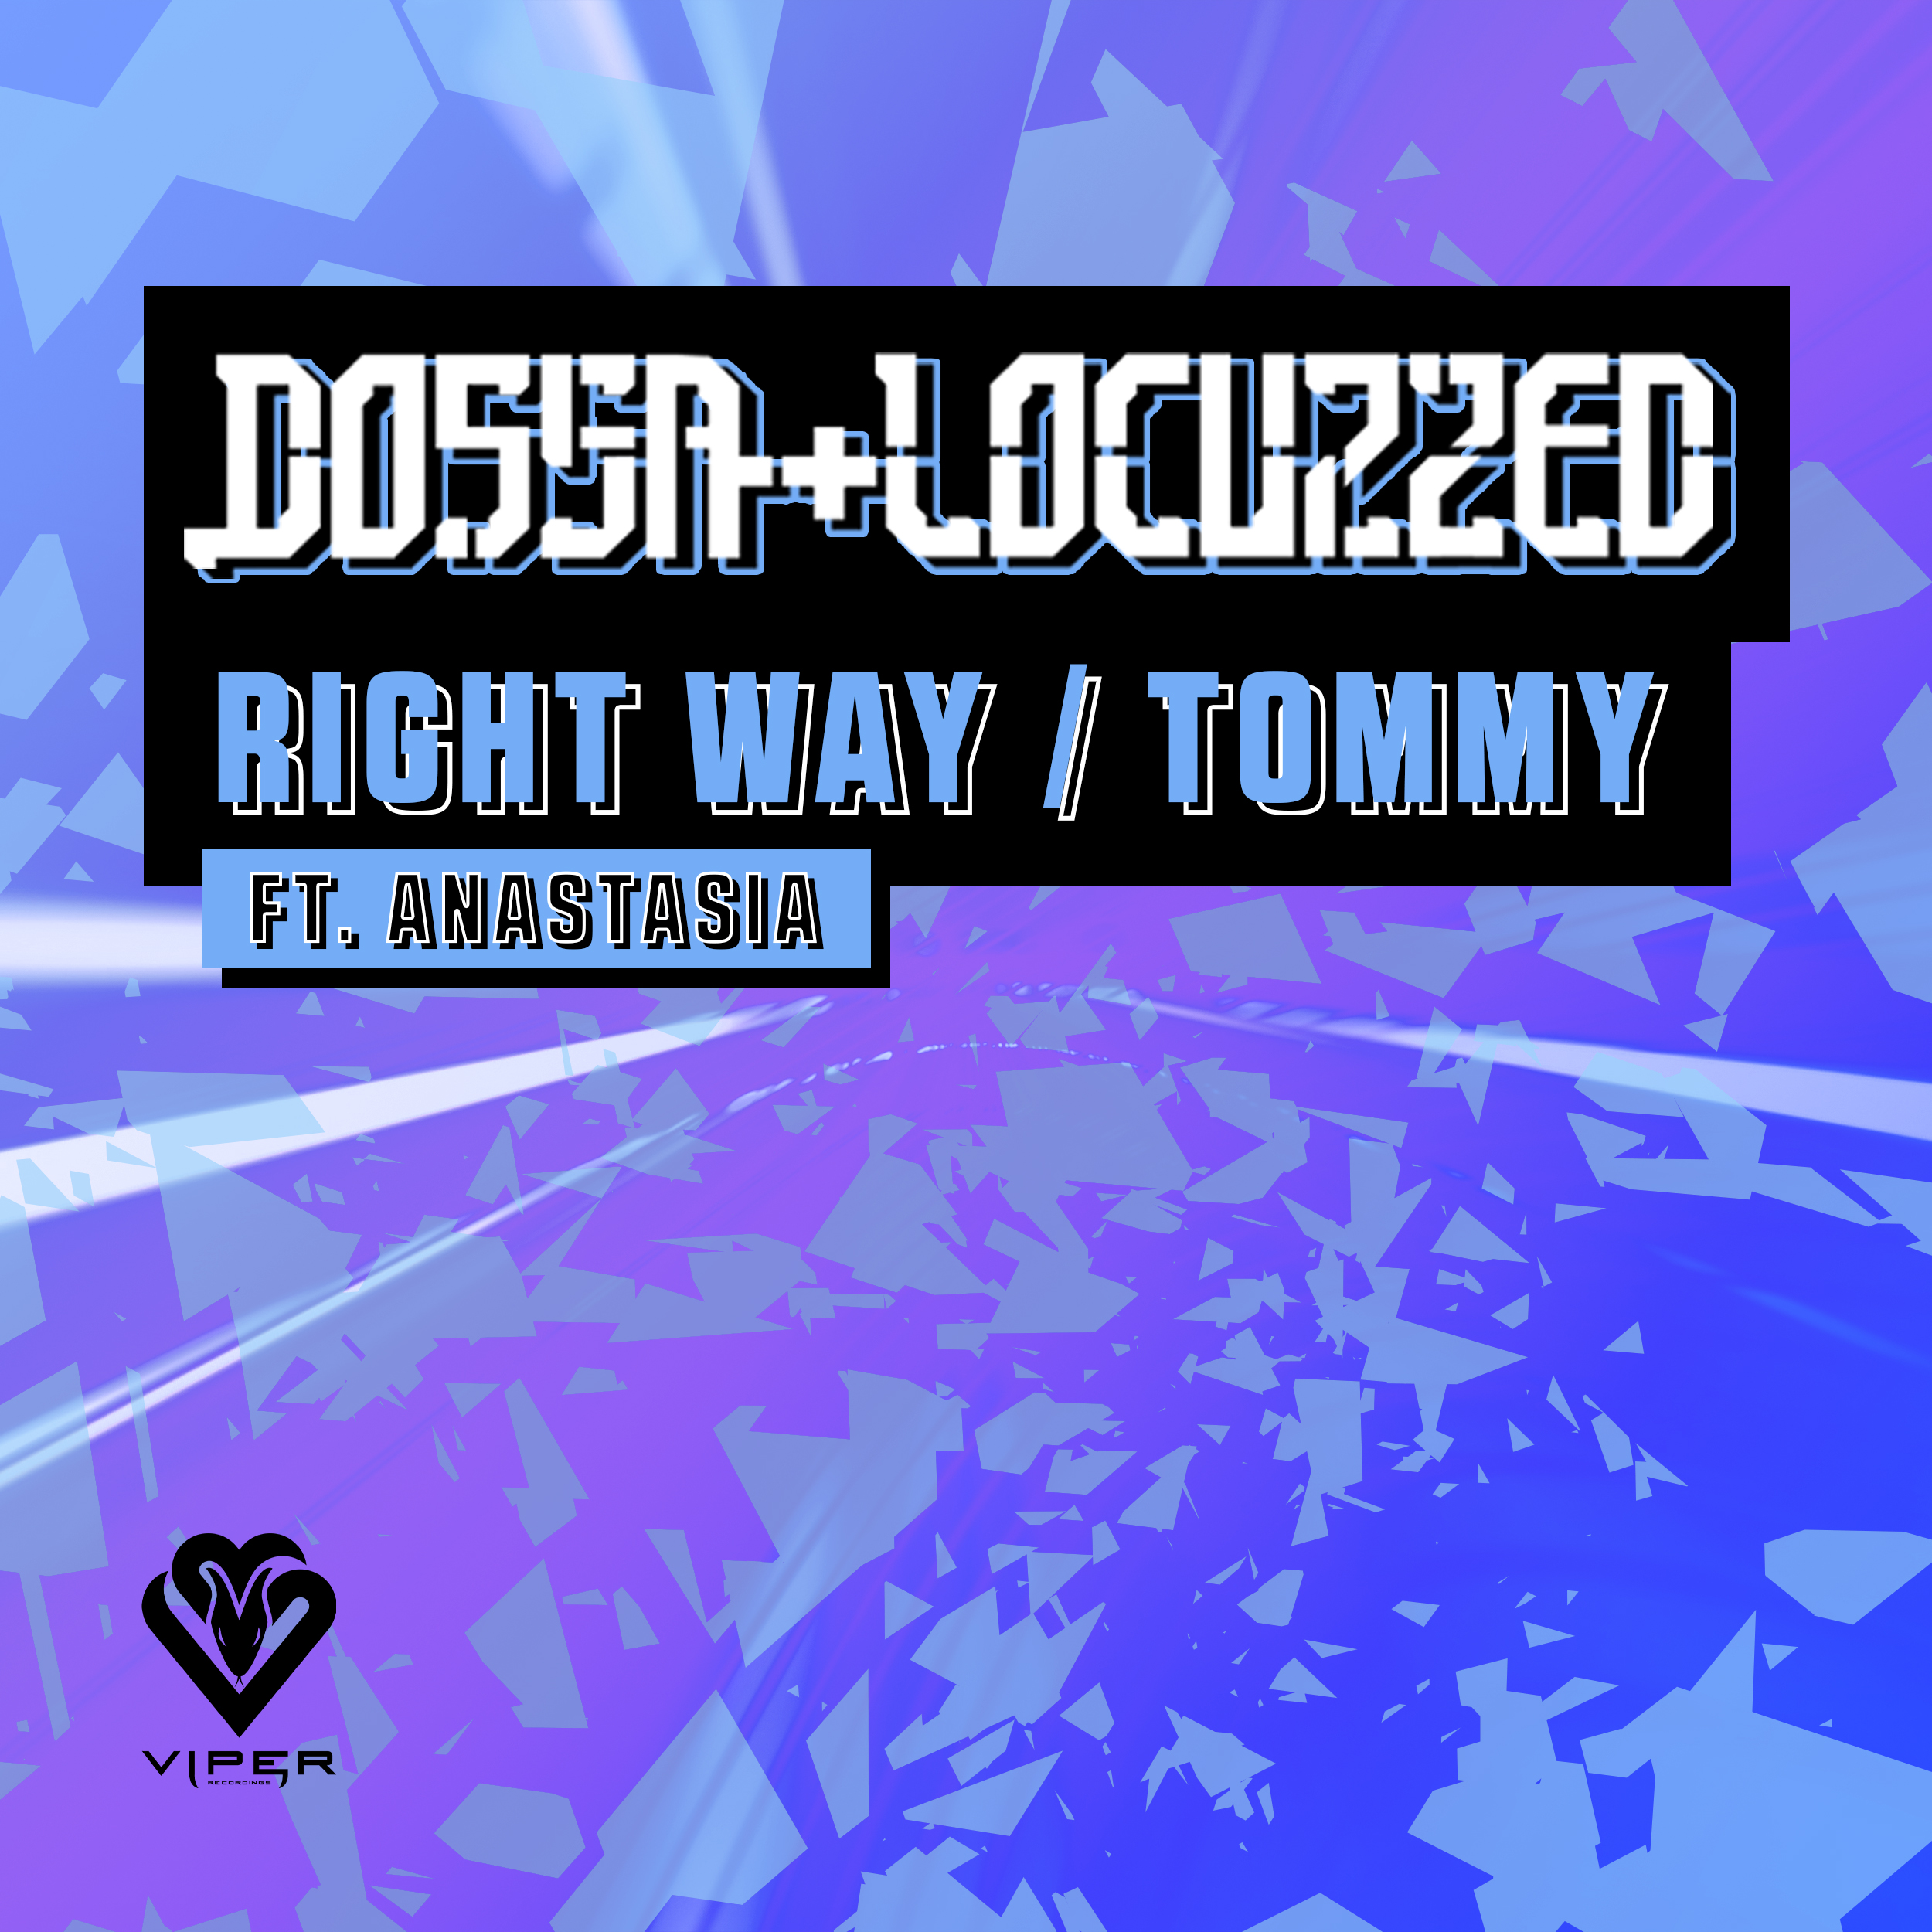 Right Way / Tommy Image